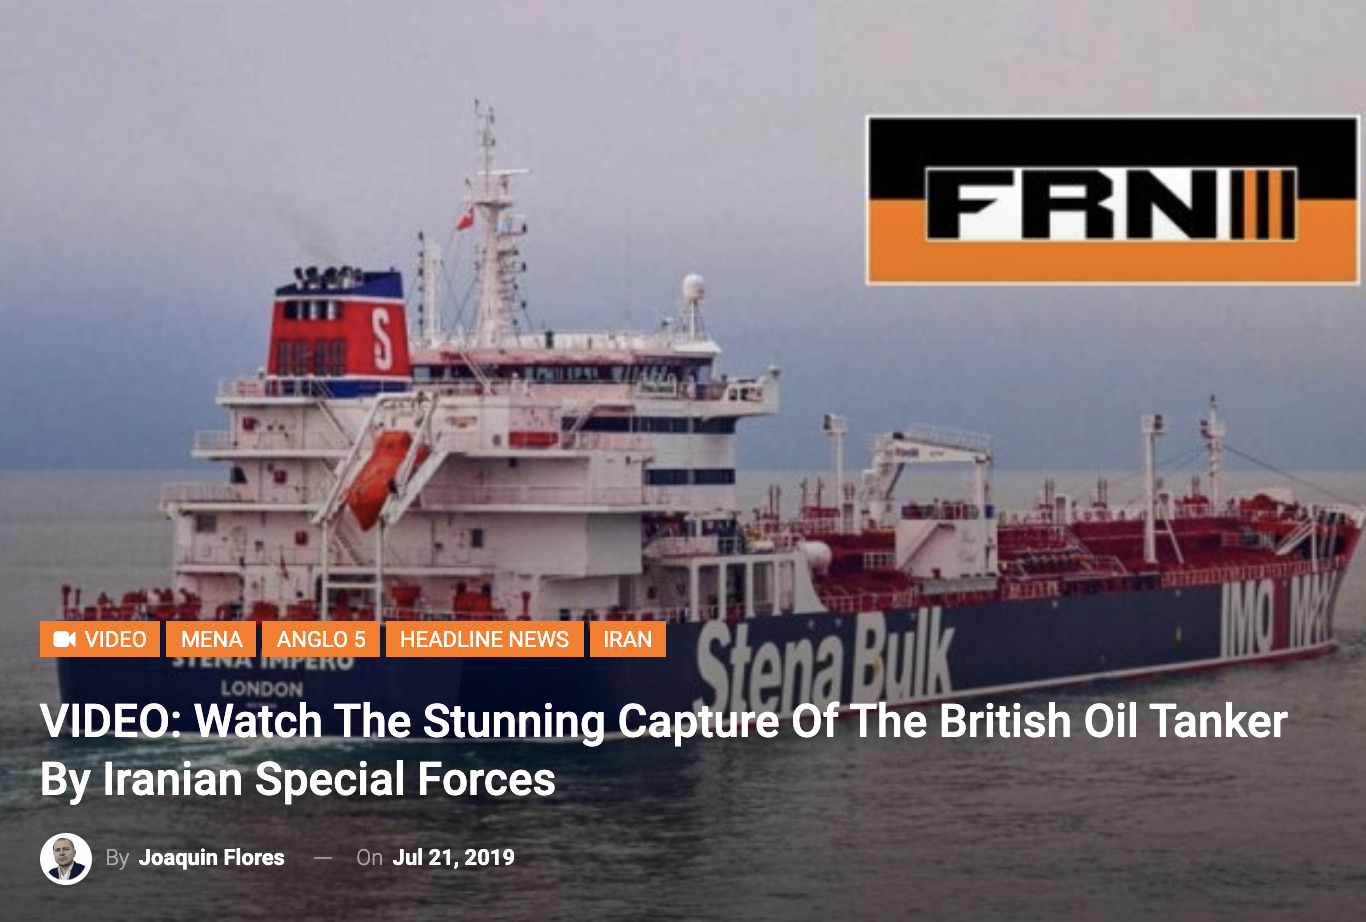 VIDEO: Watch The Stunning Capture Of The British Oil Tanker By Iranian Special Forces